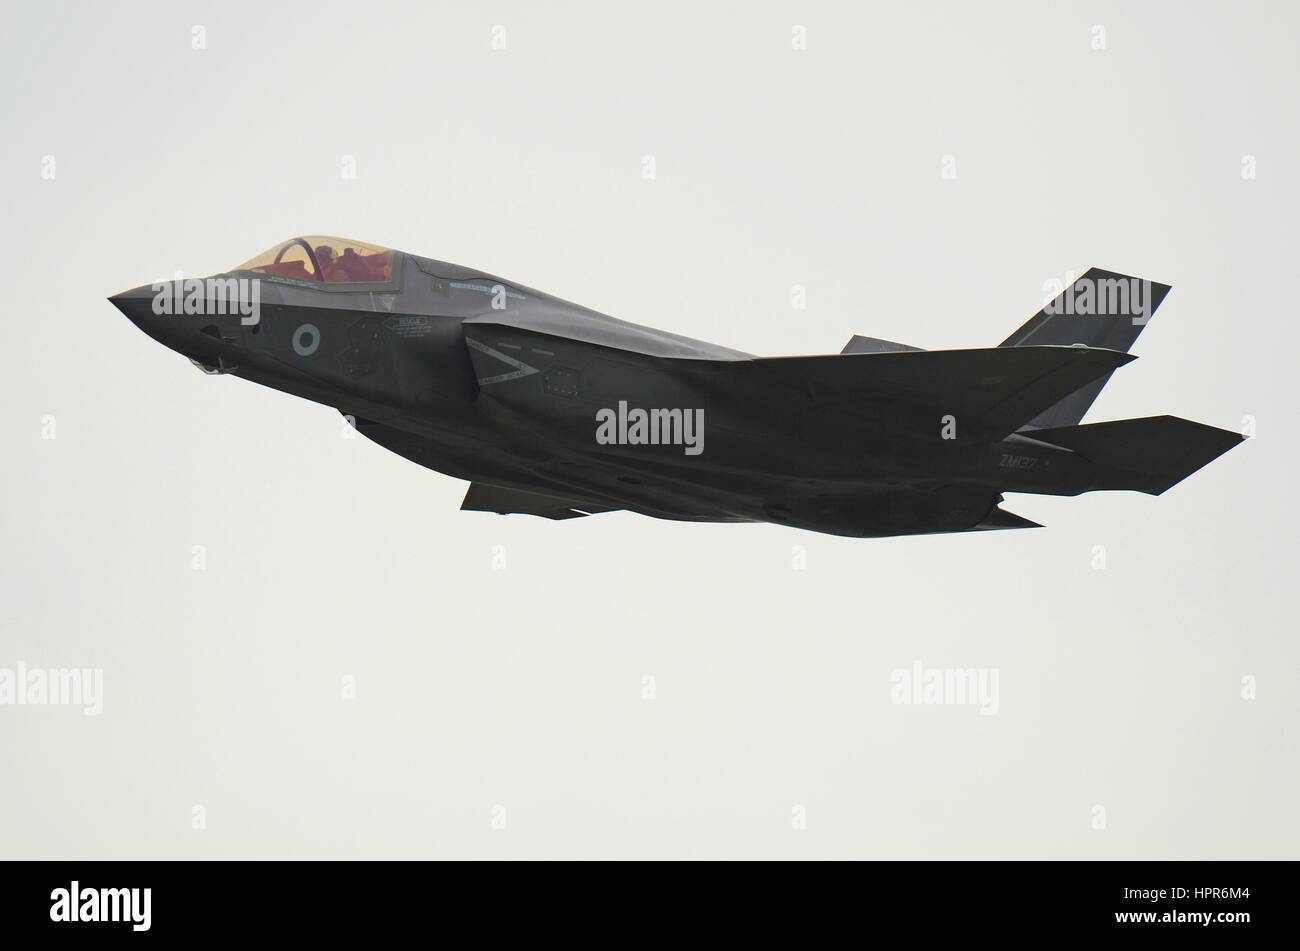 joint strike fighter essay Remember when following the f-35 joint strike fighter (jsf) program was like  watching one of those dark dramatic series produced by hbo or.